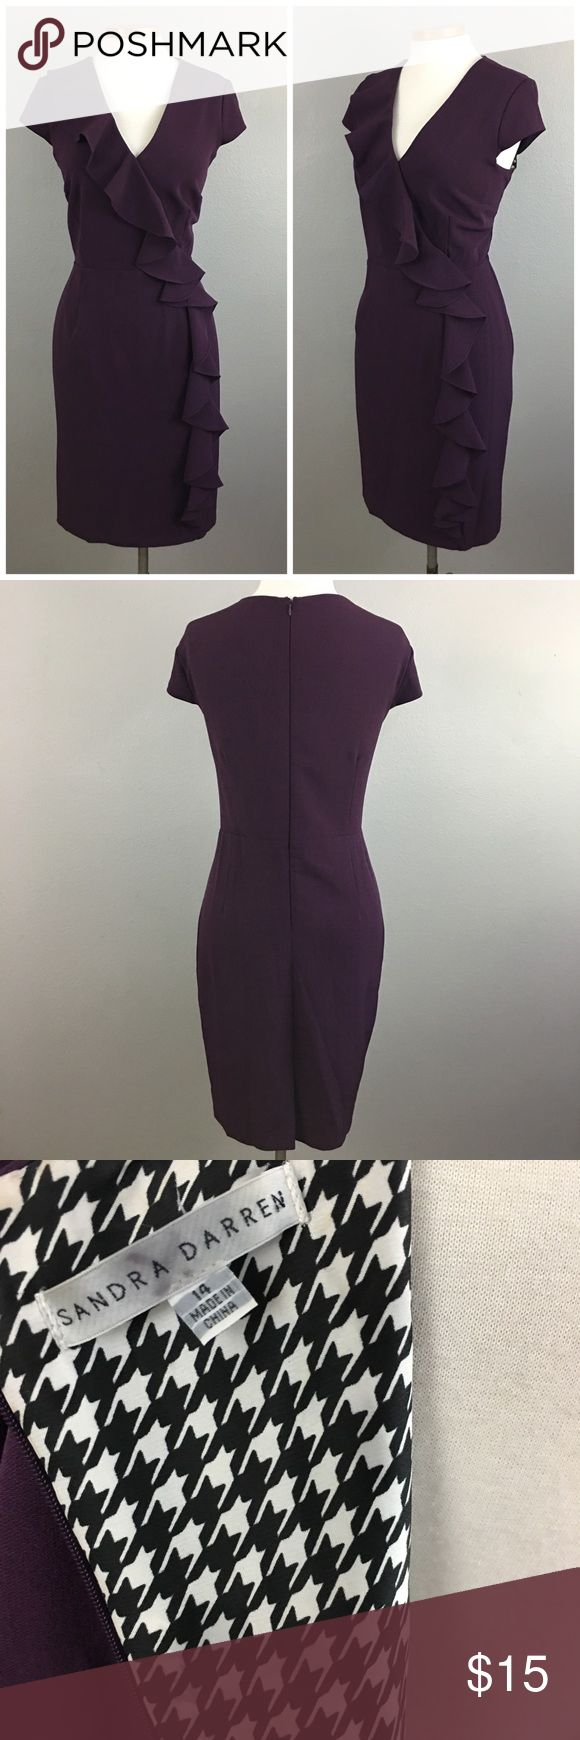 """Sandra Darren Deep Purple Ruffle Midi Dress Sandra Darren Deep Purple Ruffle Midi Dress. Size 14 with stretch. Perfect for work. Thank you for looking at my listing. Please feel free to comment with any questions (no trades/modeling).  •Bust: 44"""" •Length: 37"""" •Condition:  EUC, no visible flaws   25% off all Bundles or 3+ items! Reasonable offers welcome. IC Sandra Darren Dresses Midi"""